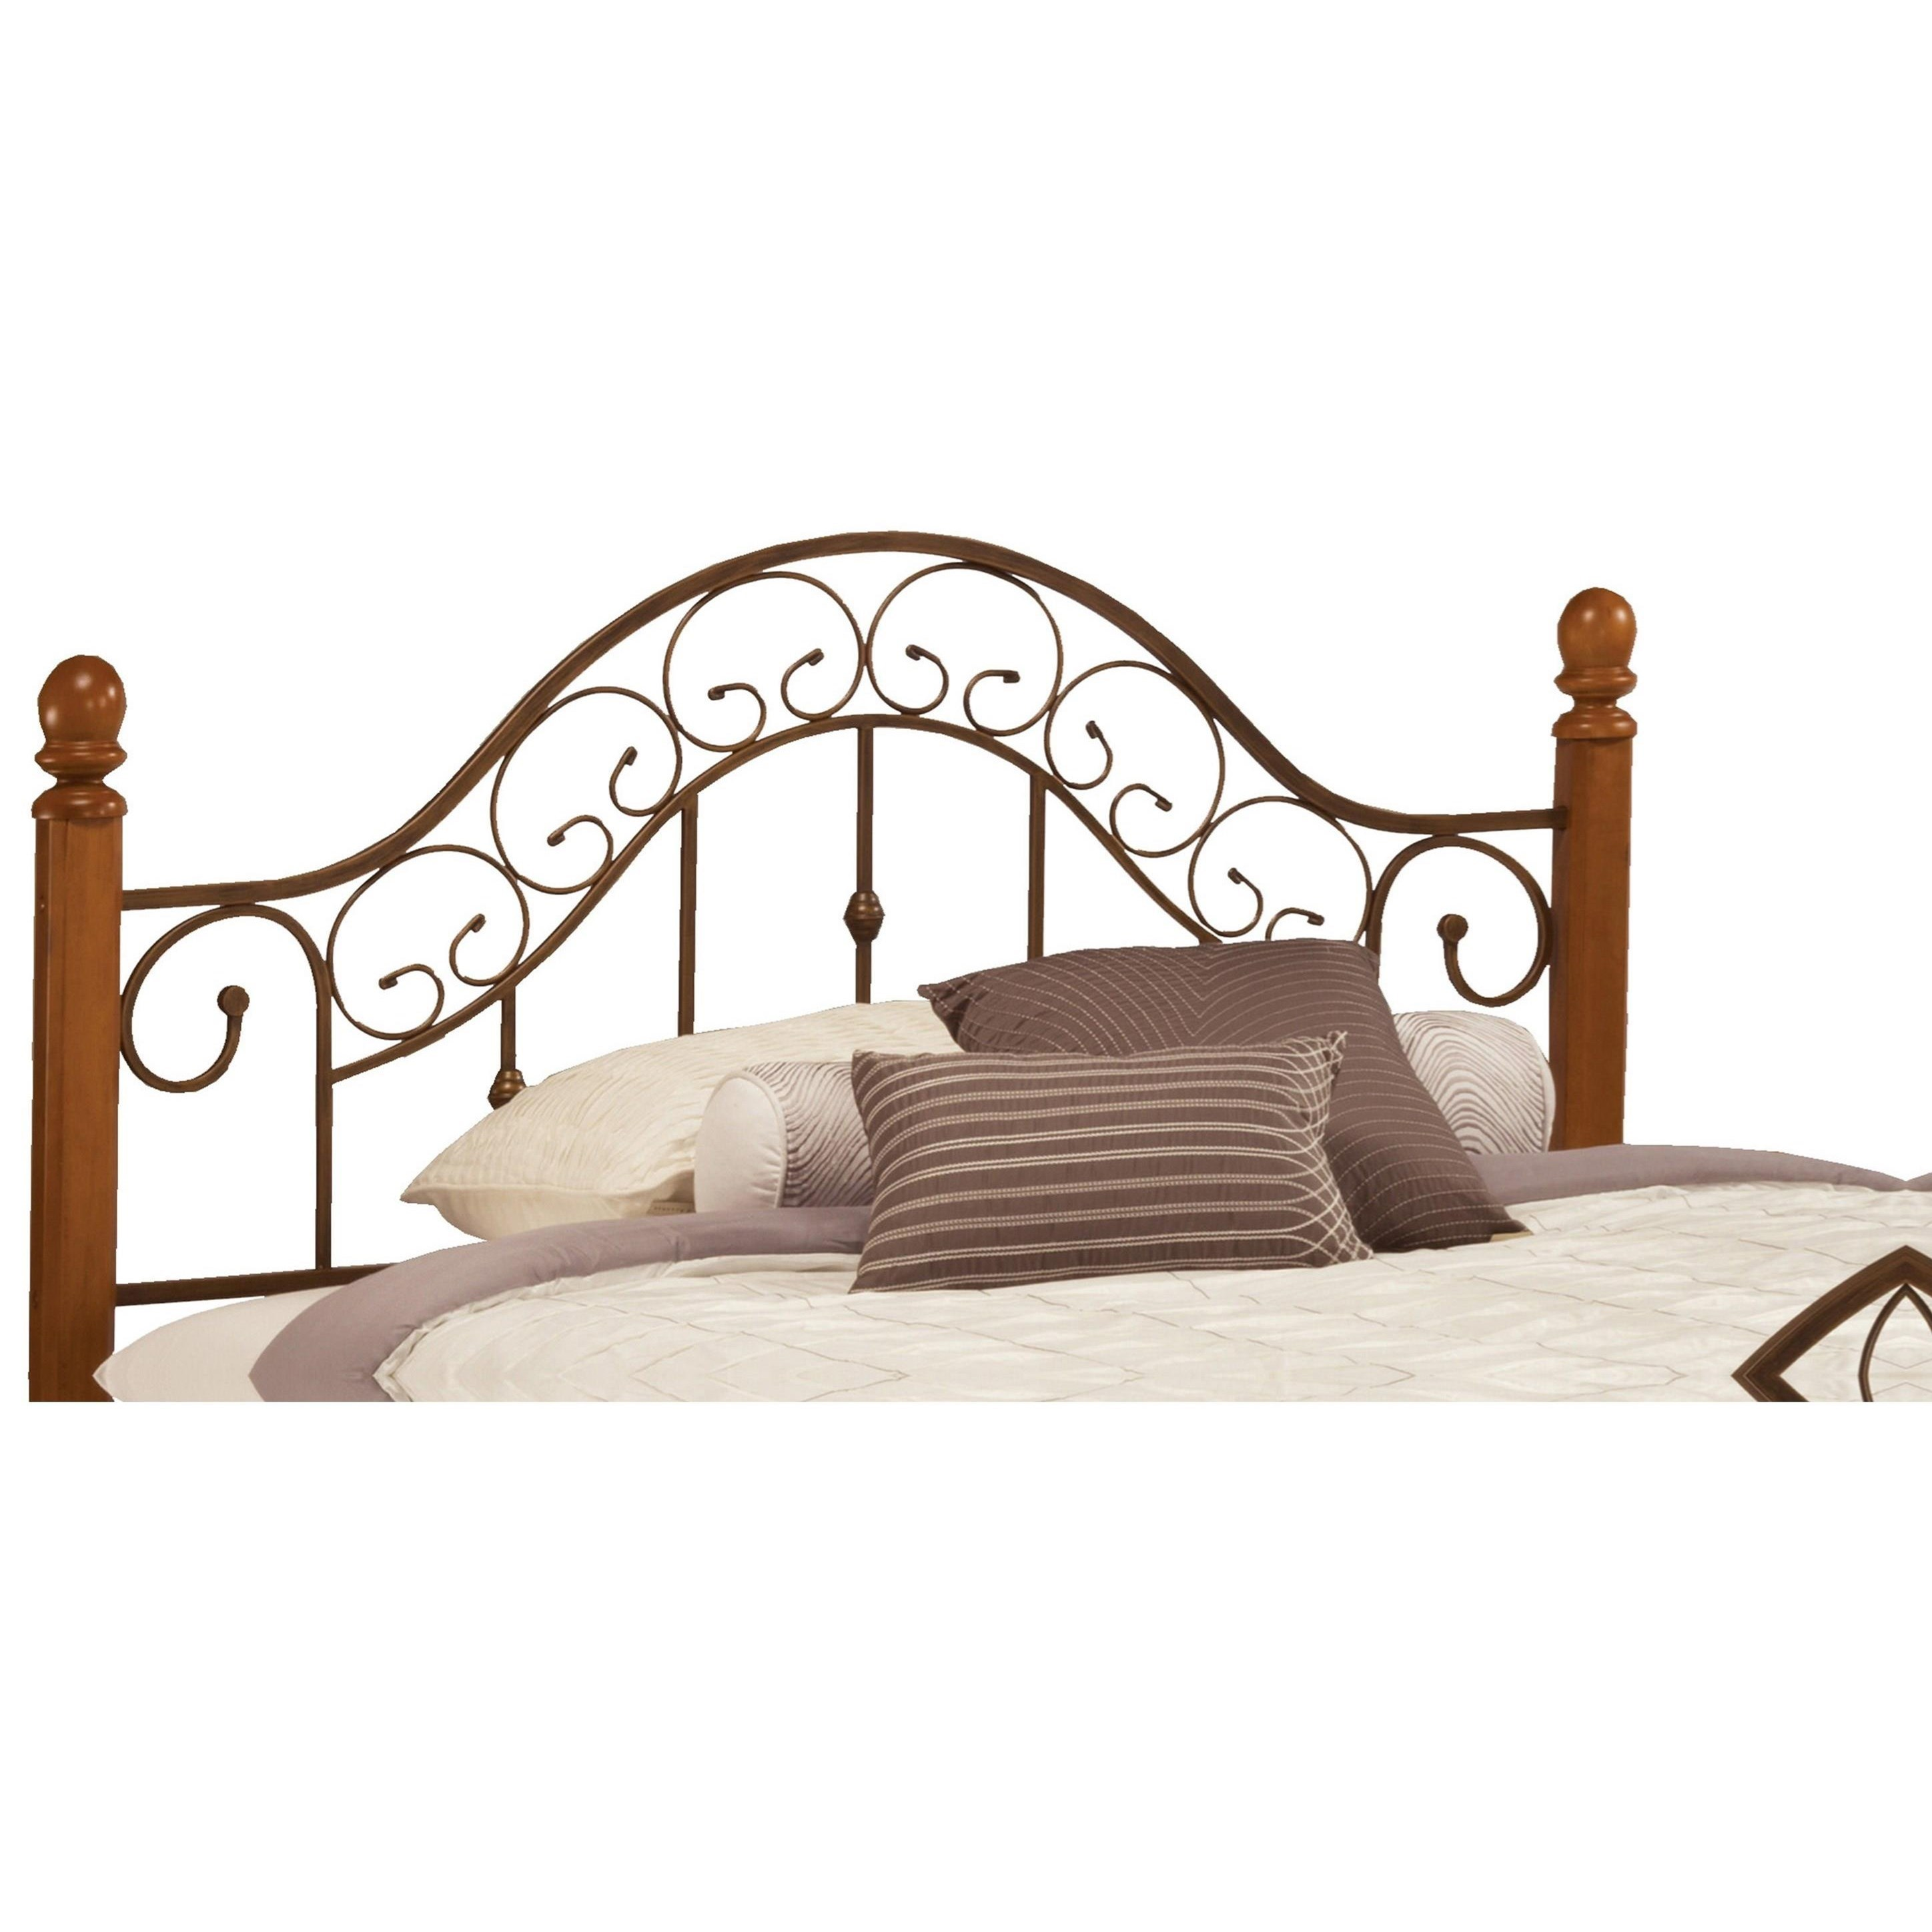 Hillsdale Metal Beds King San Marco Headboard - Item Number: 310HK